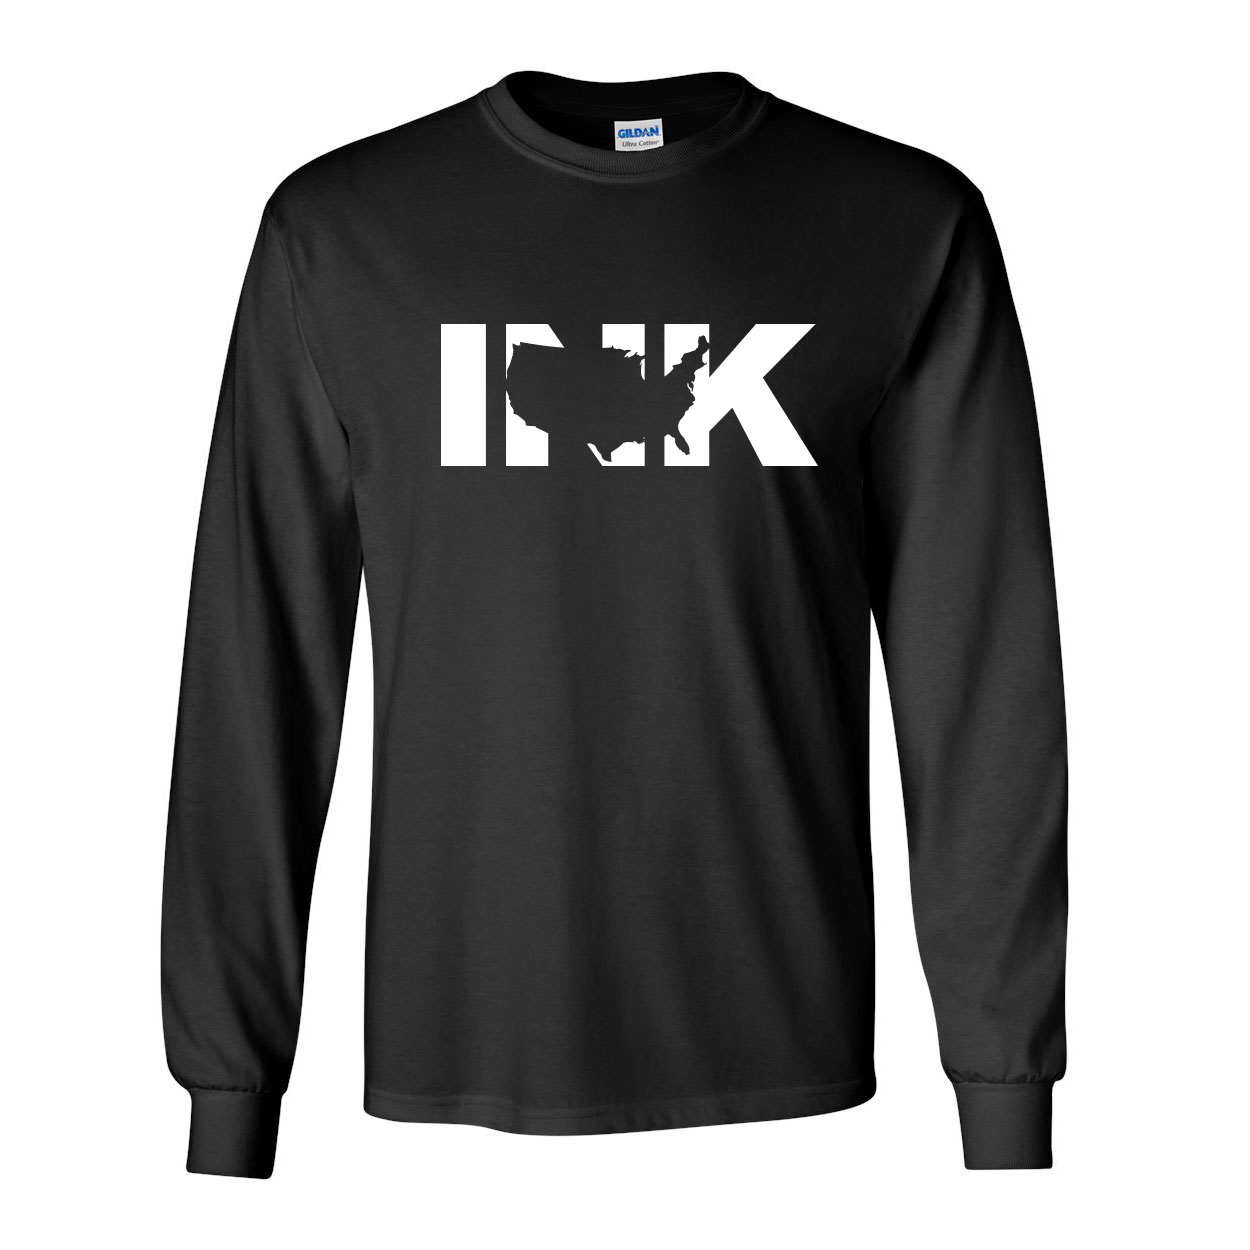 Ink United States Classic Long Sleeve T-Shirt Black (White Logo)